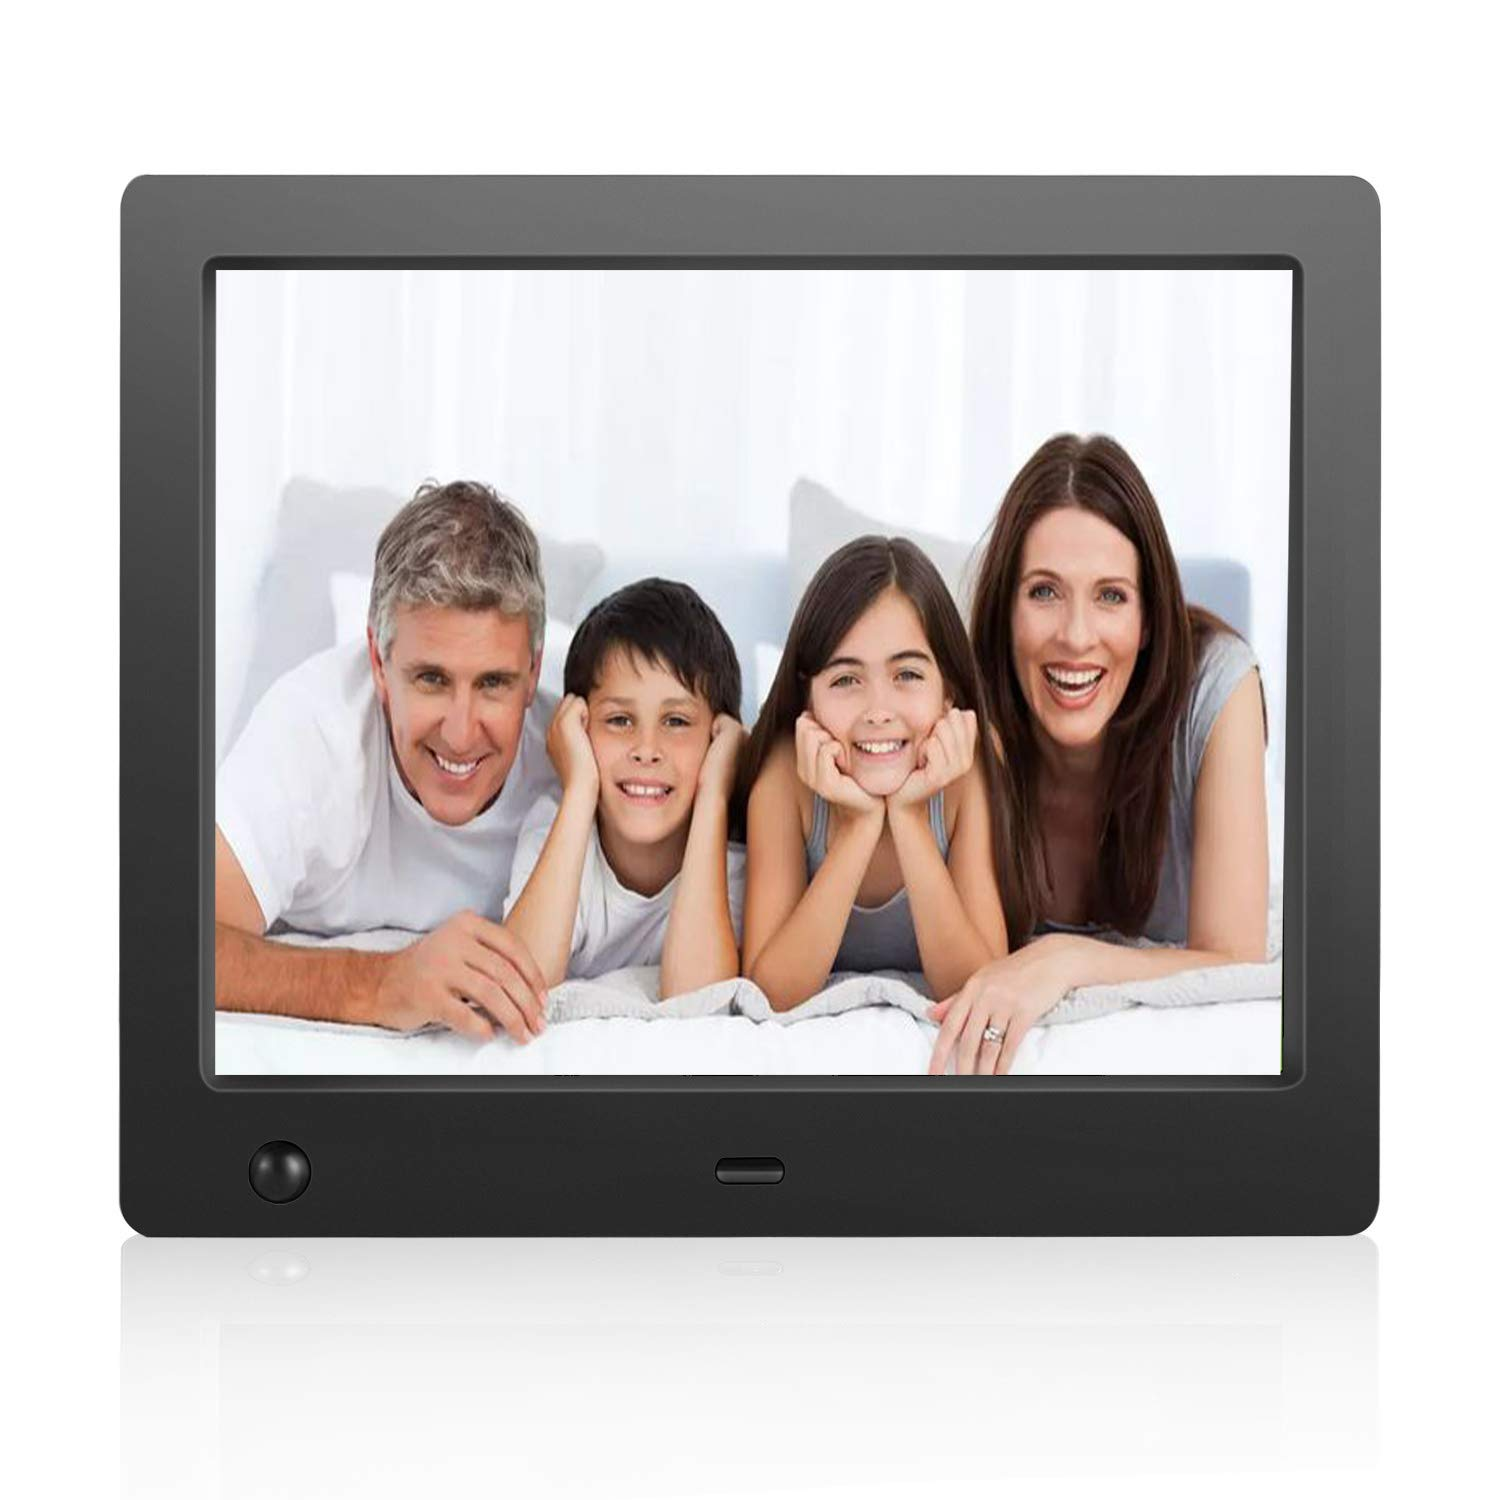 Flyamapirit Digital Picture Frame 8 inch Electronic Digital Photo Frame with High Resolution 1024x768 IPS LCD and Motion Sensor/1080P 720P Video Player/Calendar/Time/Remote Control/Best for Gift by FLYAMAPIRIT